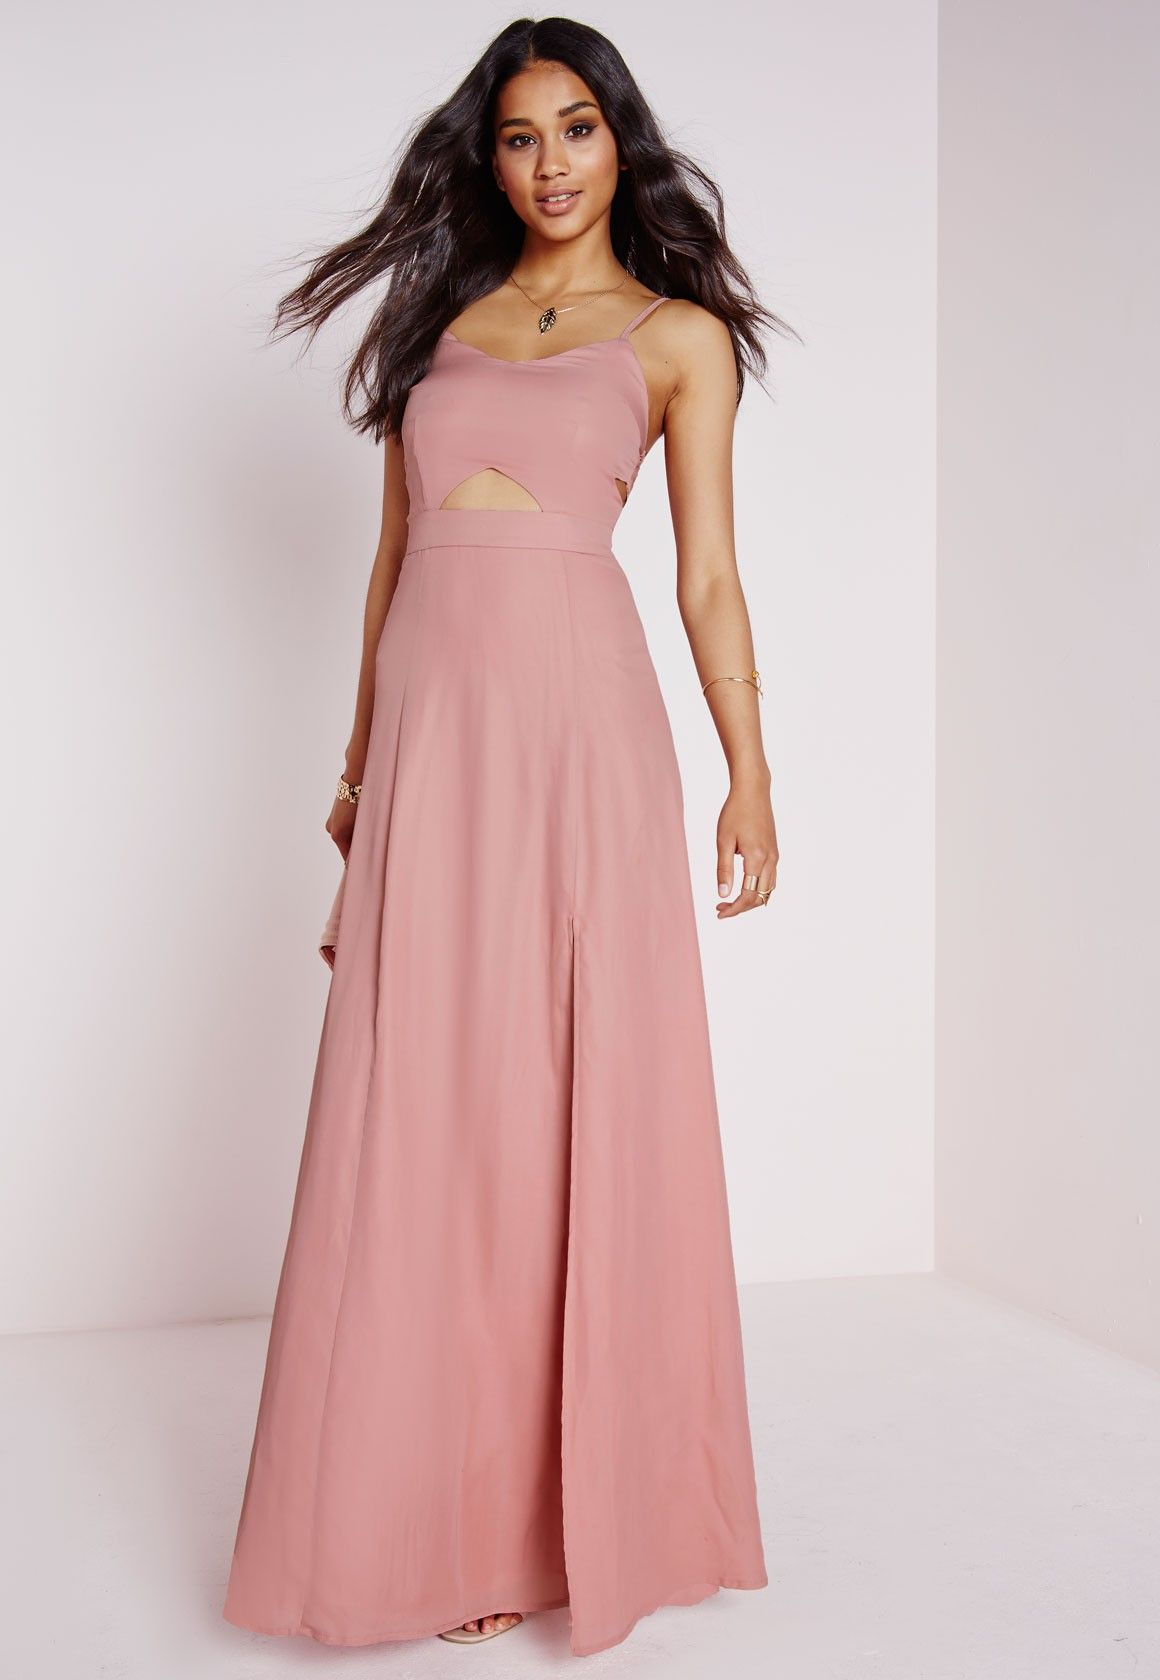 Missguided - Crepe Bralet Maxi Dress Dusky Pink | prom | Pinterest ...